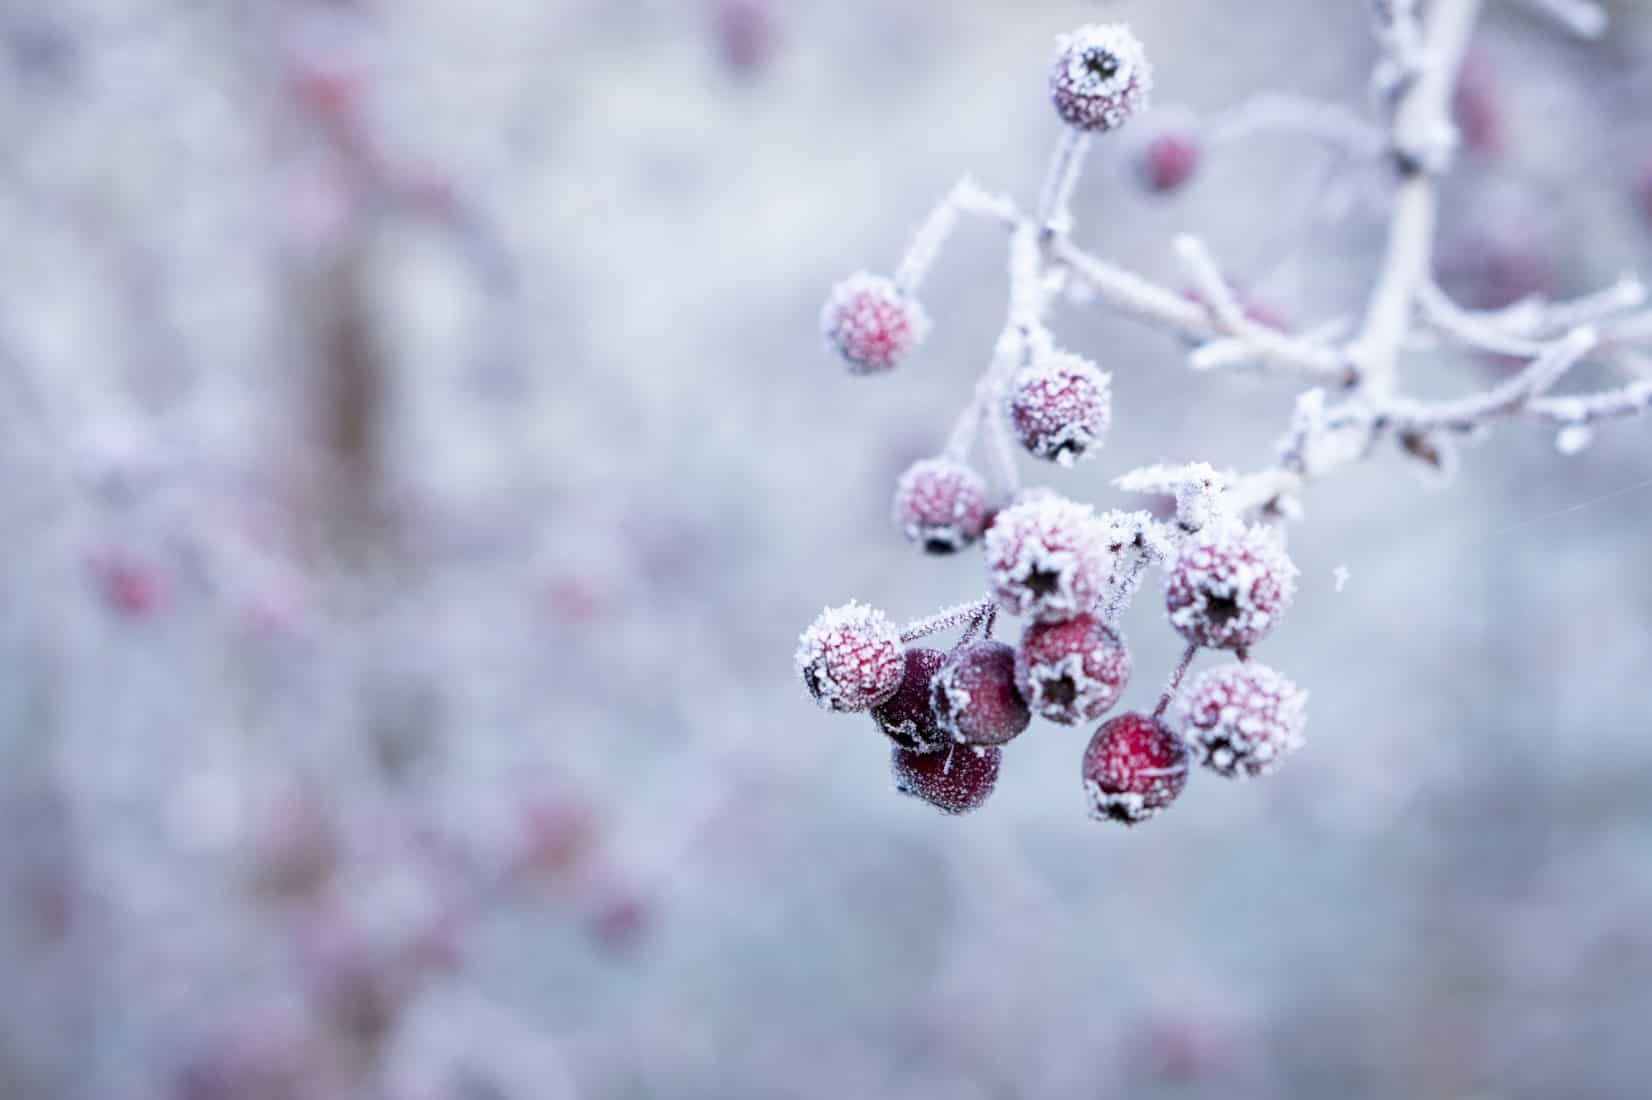 Frozen berries in garden